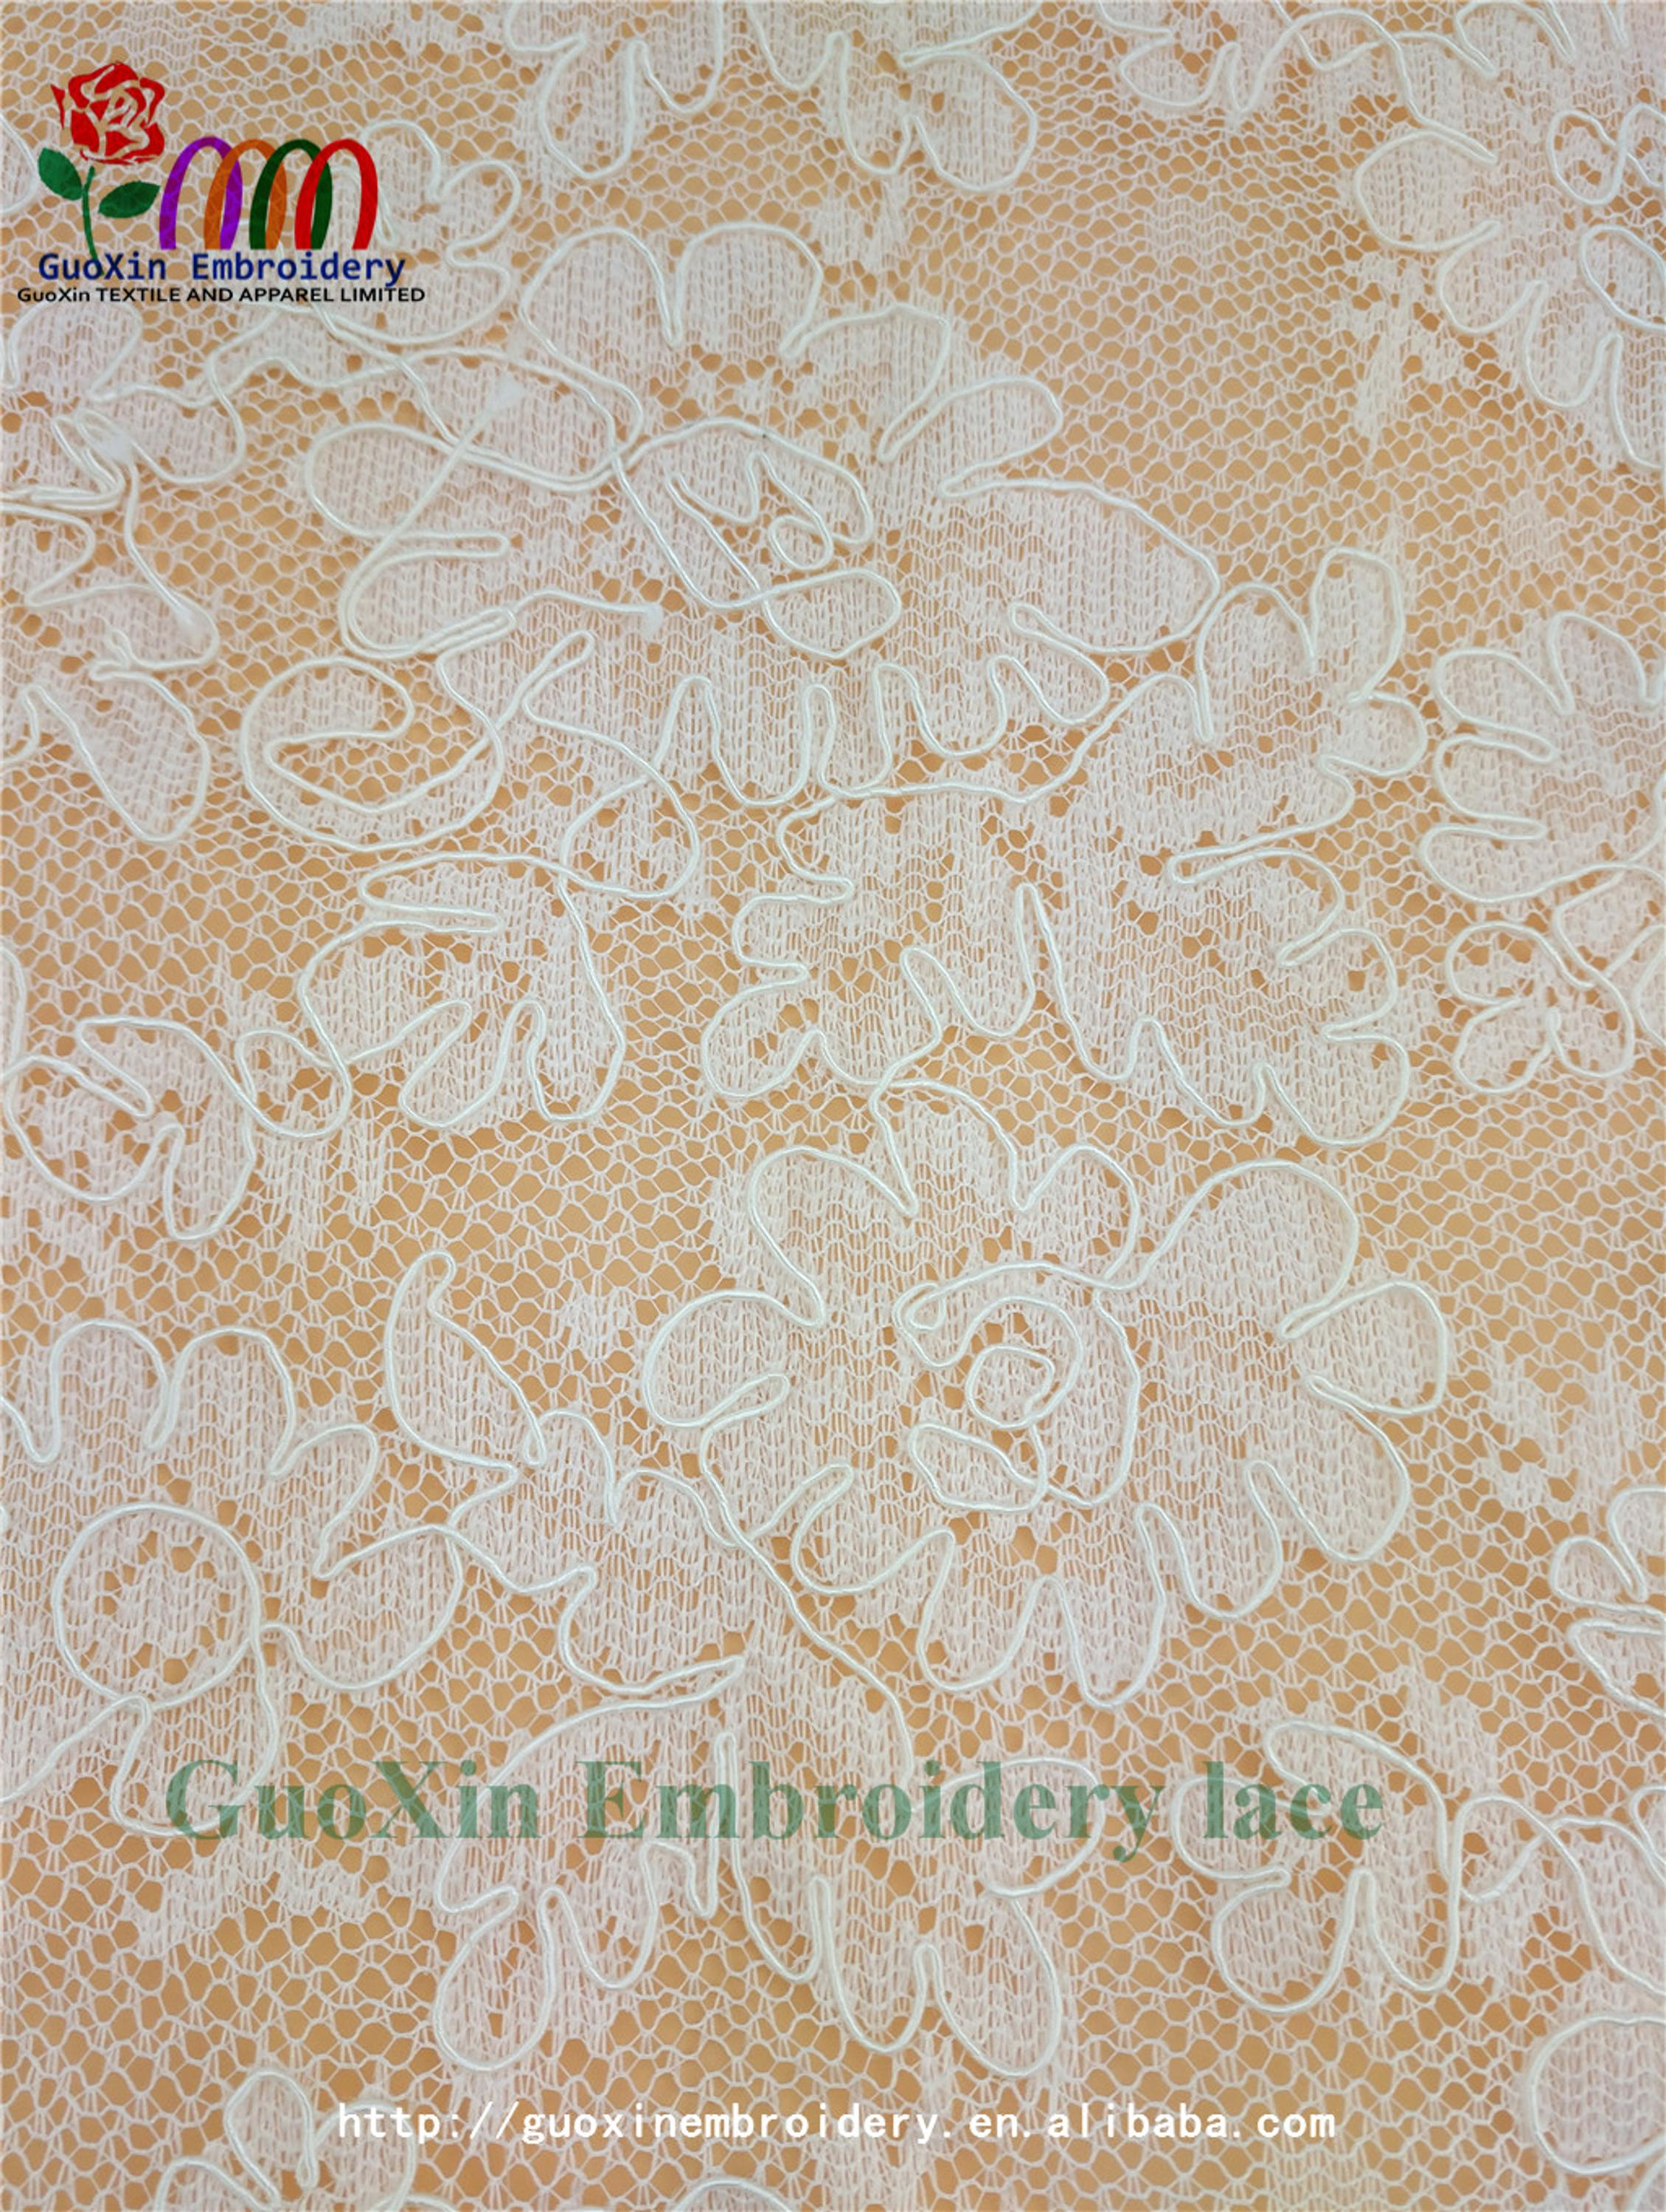 china manufacturer french lace embroidery fabric ivory bridal lace with cording (5).jpg